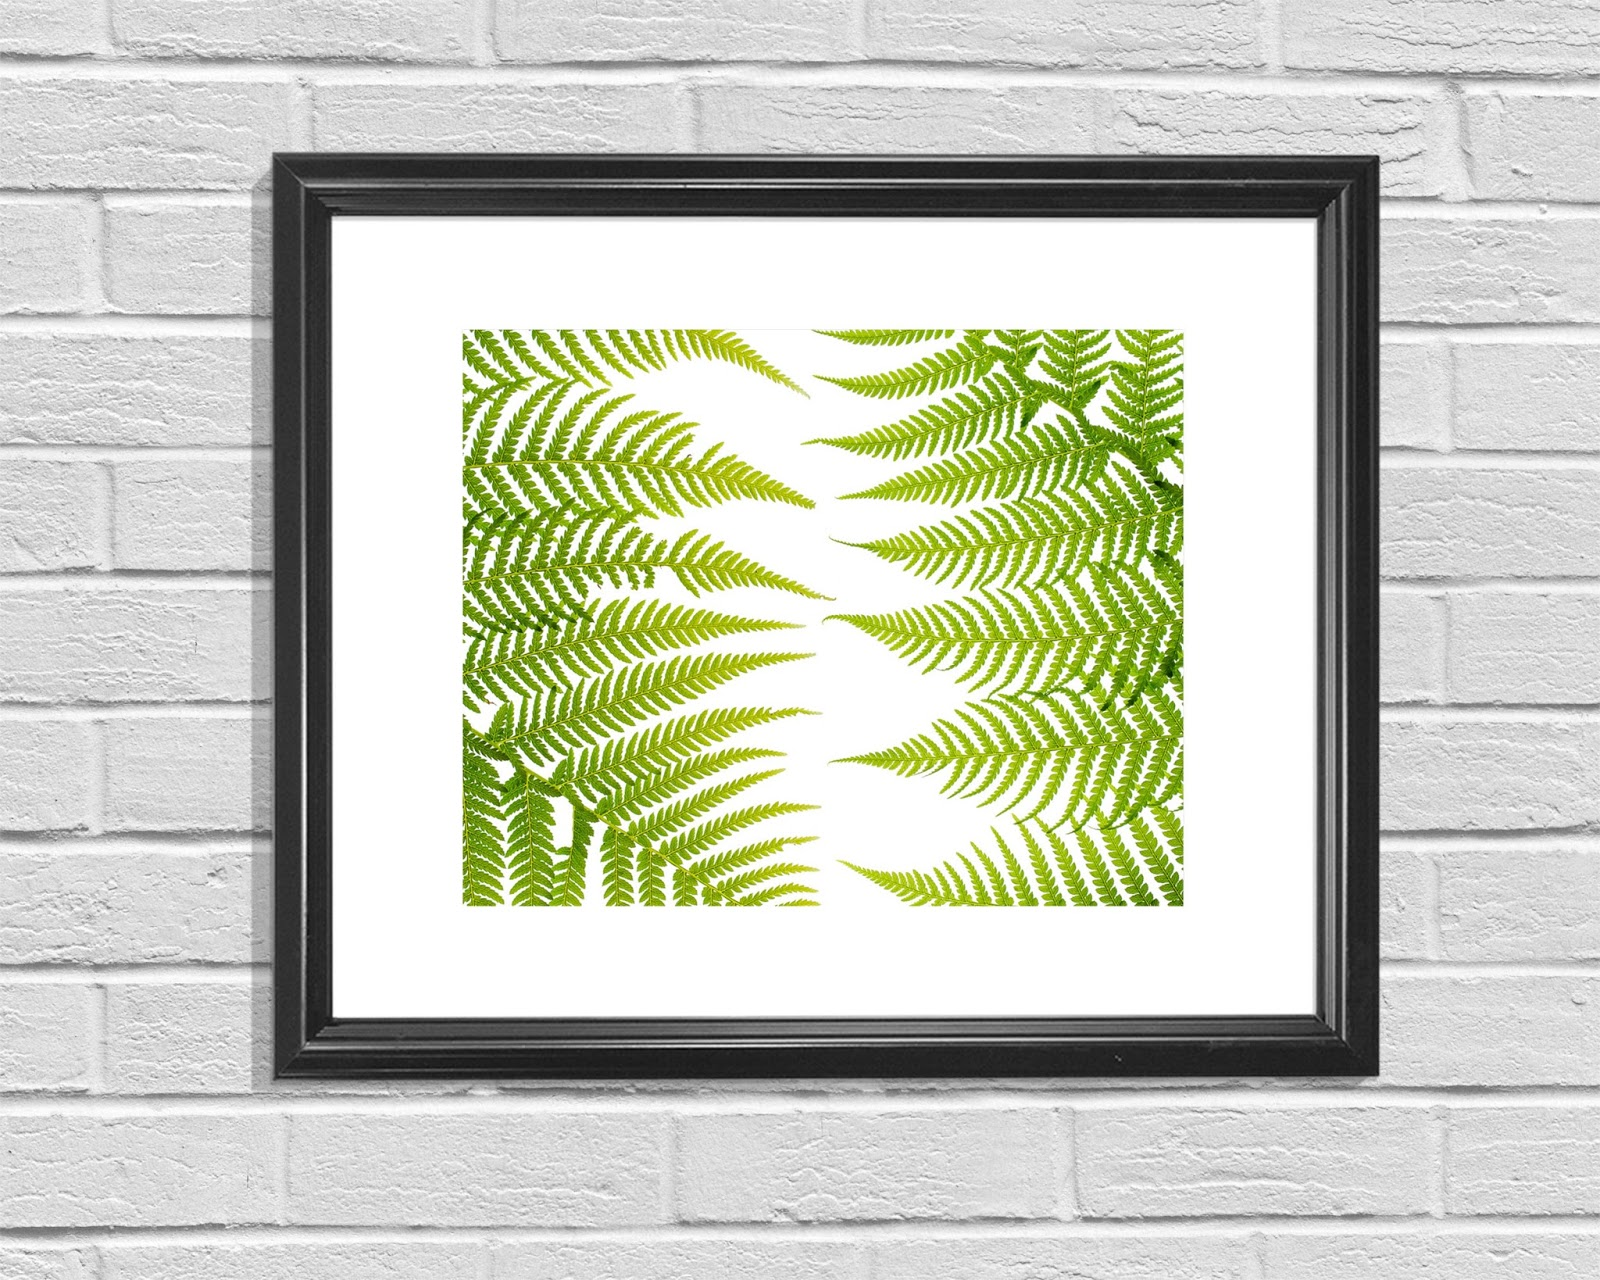 Fern, Potted Fern, Fern Decor, Fern House Plant